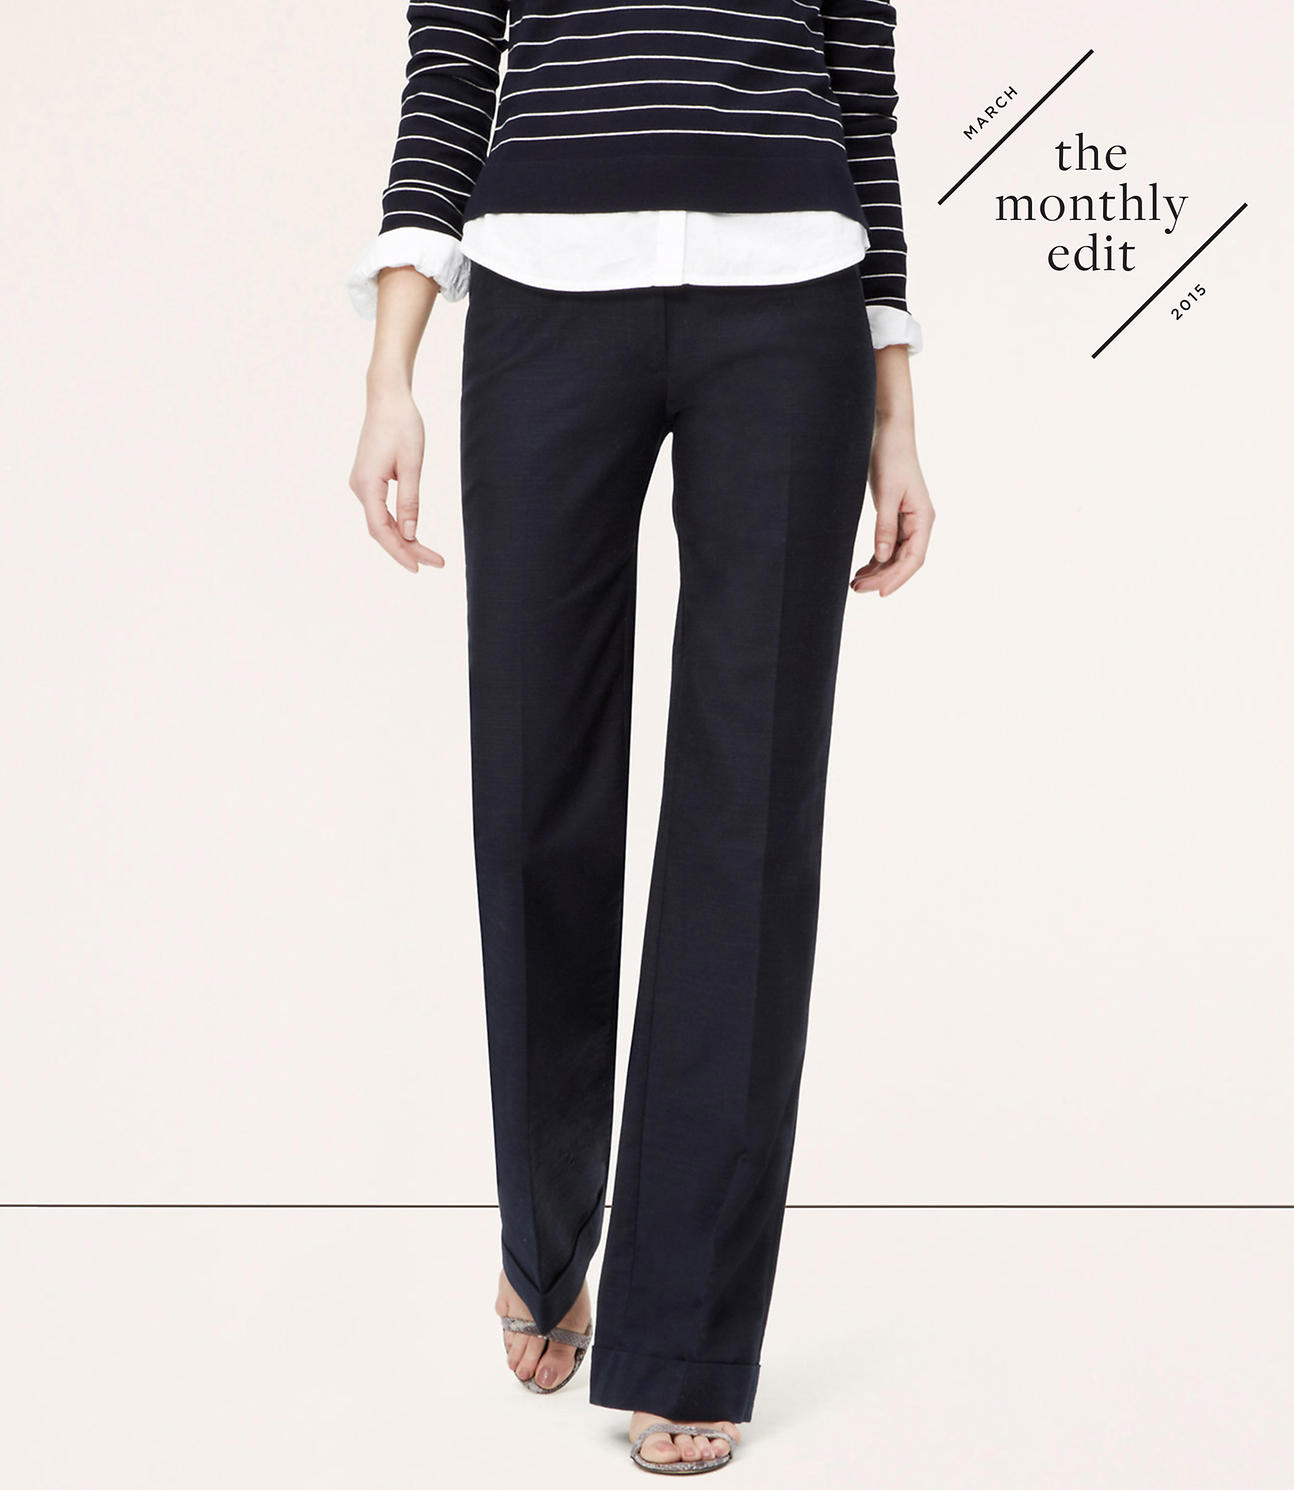 Primary Image of Tabbed Wide-Leg Trousers in Marisa Fit